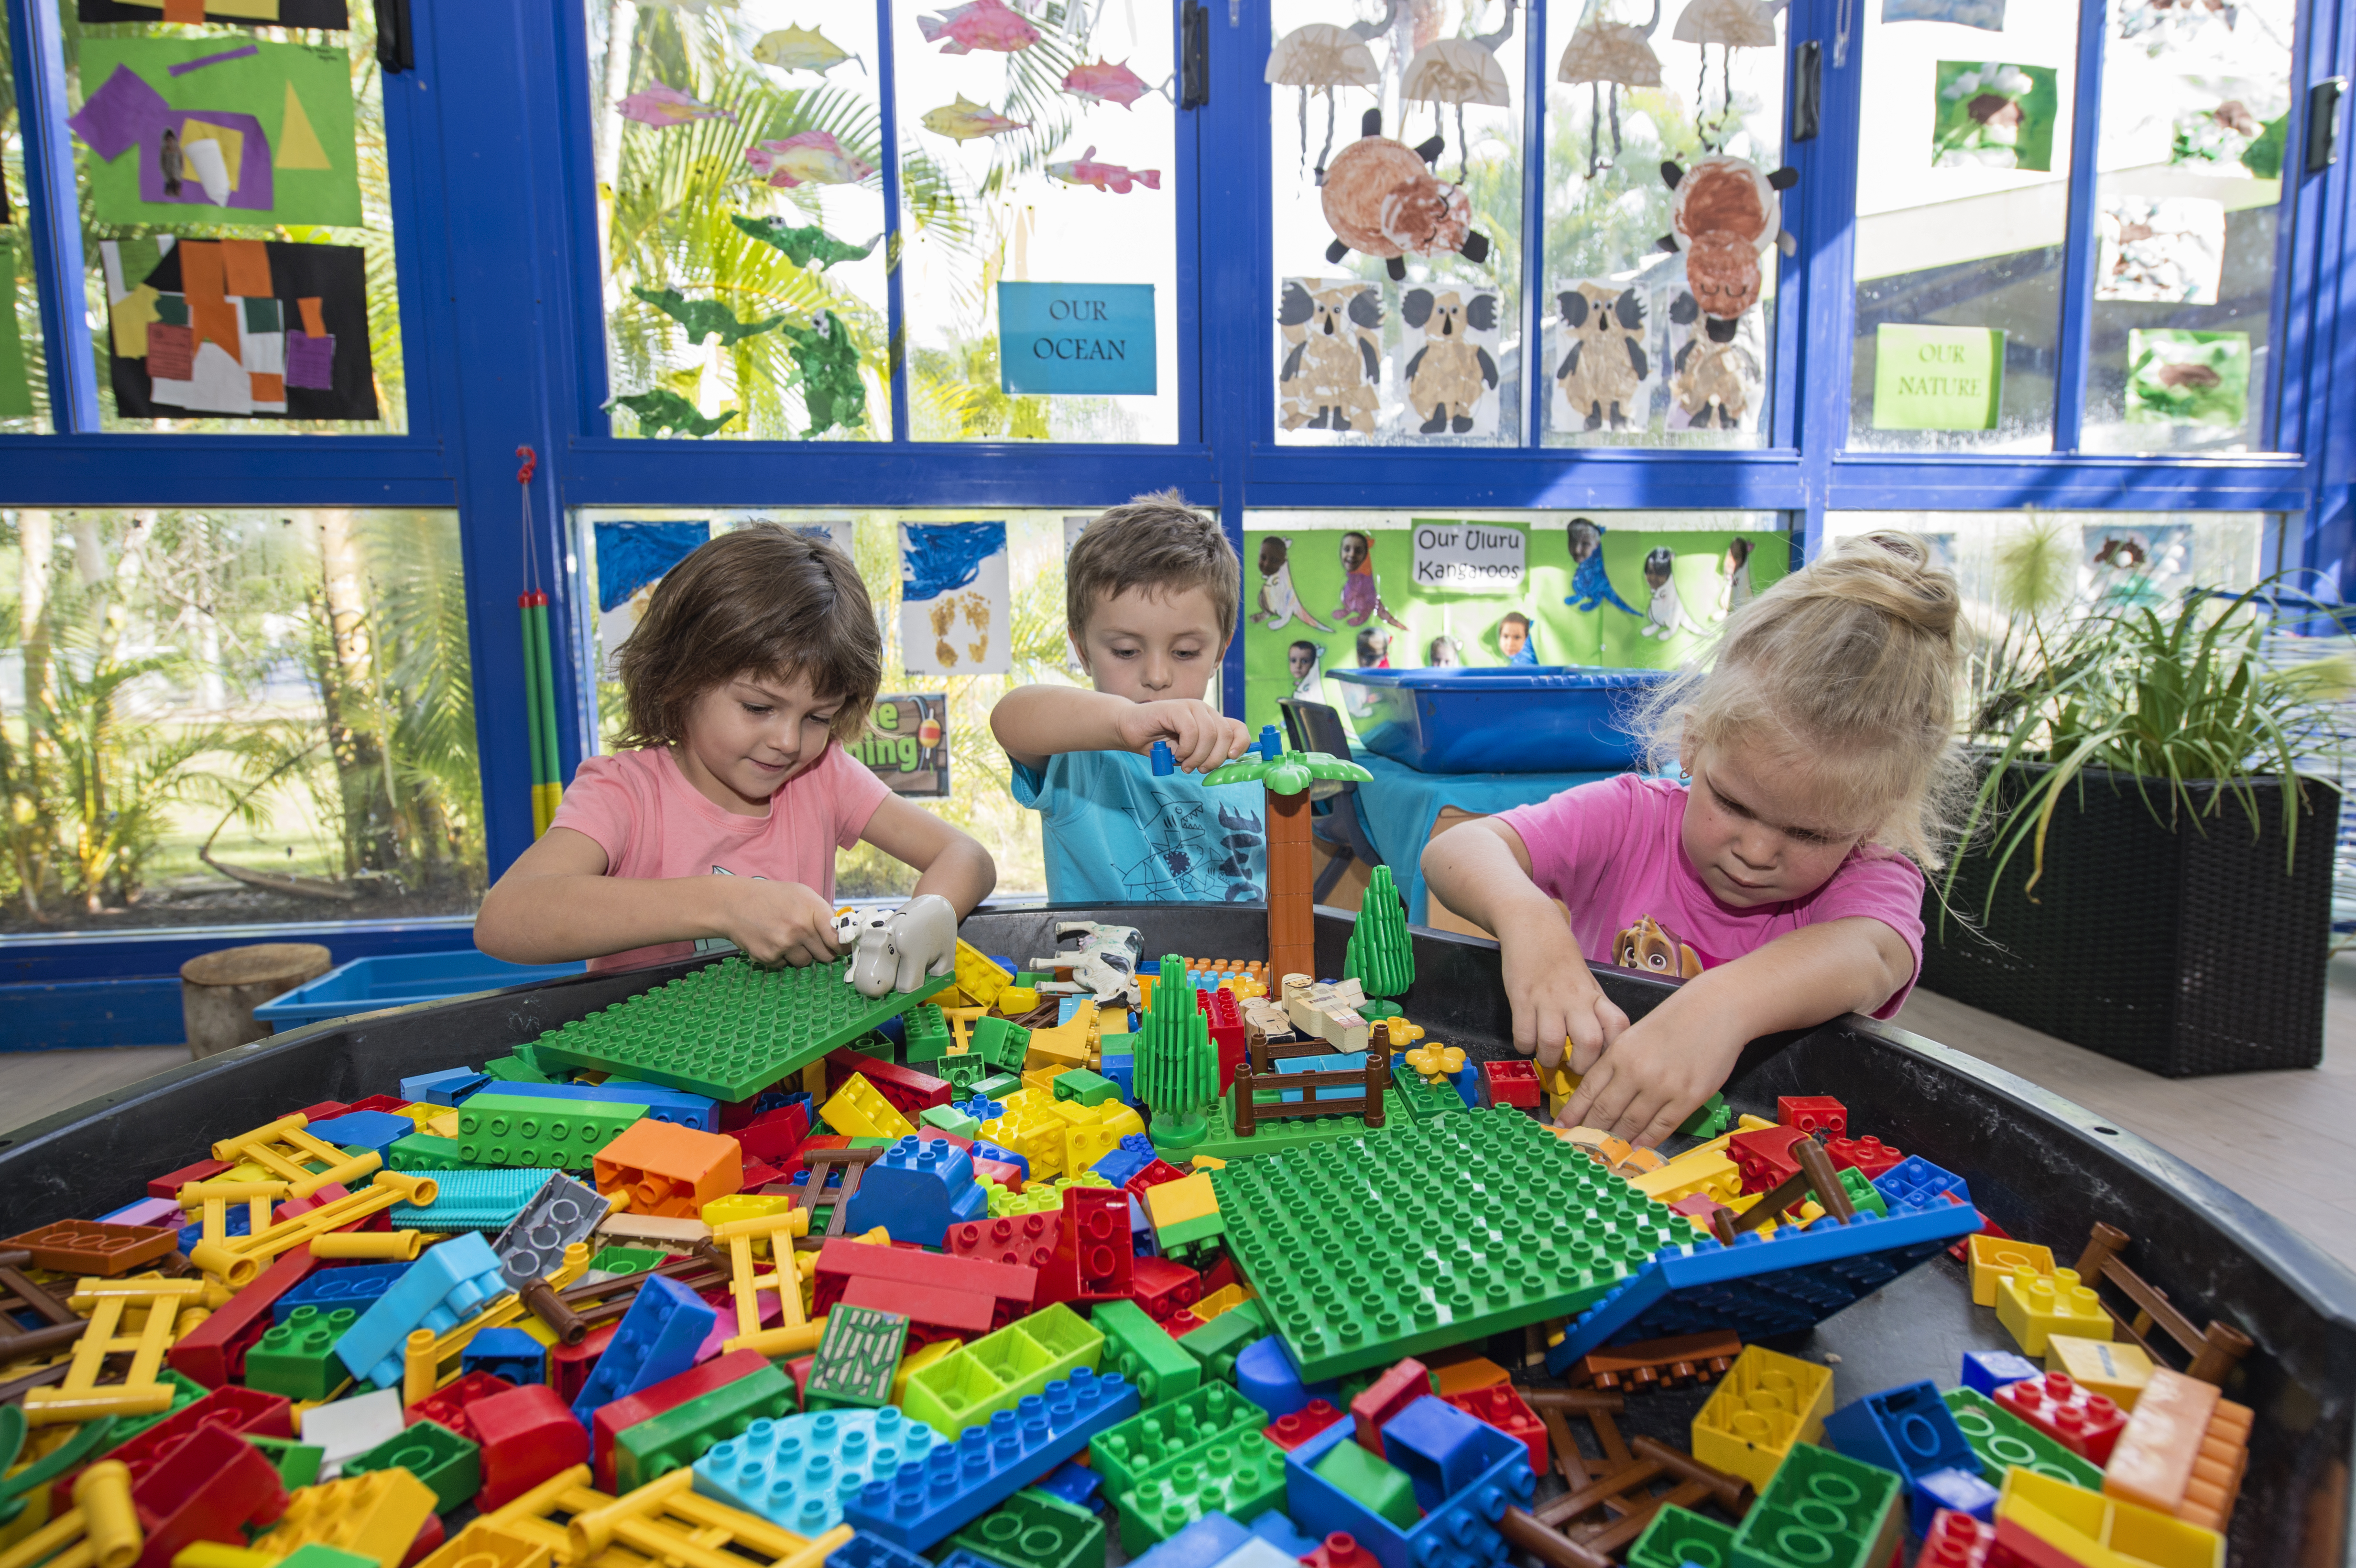 Group of children playing with Lego in classroom at Milestones Wagaman